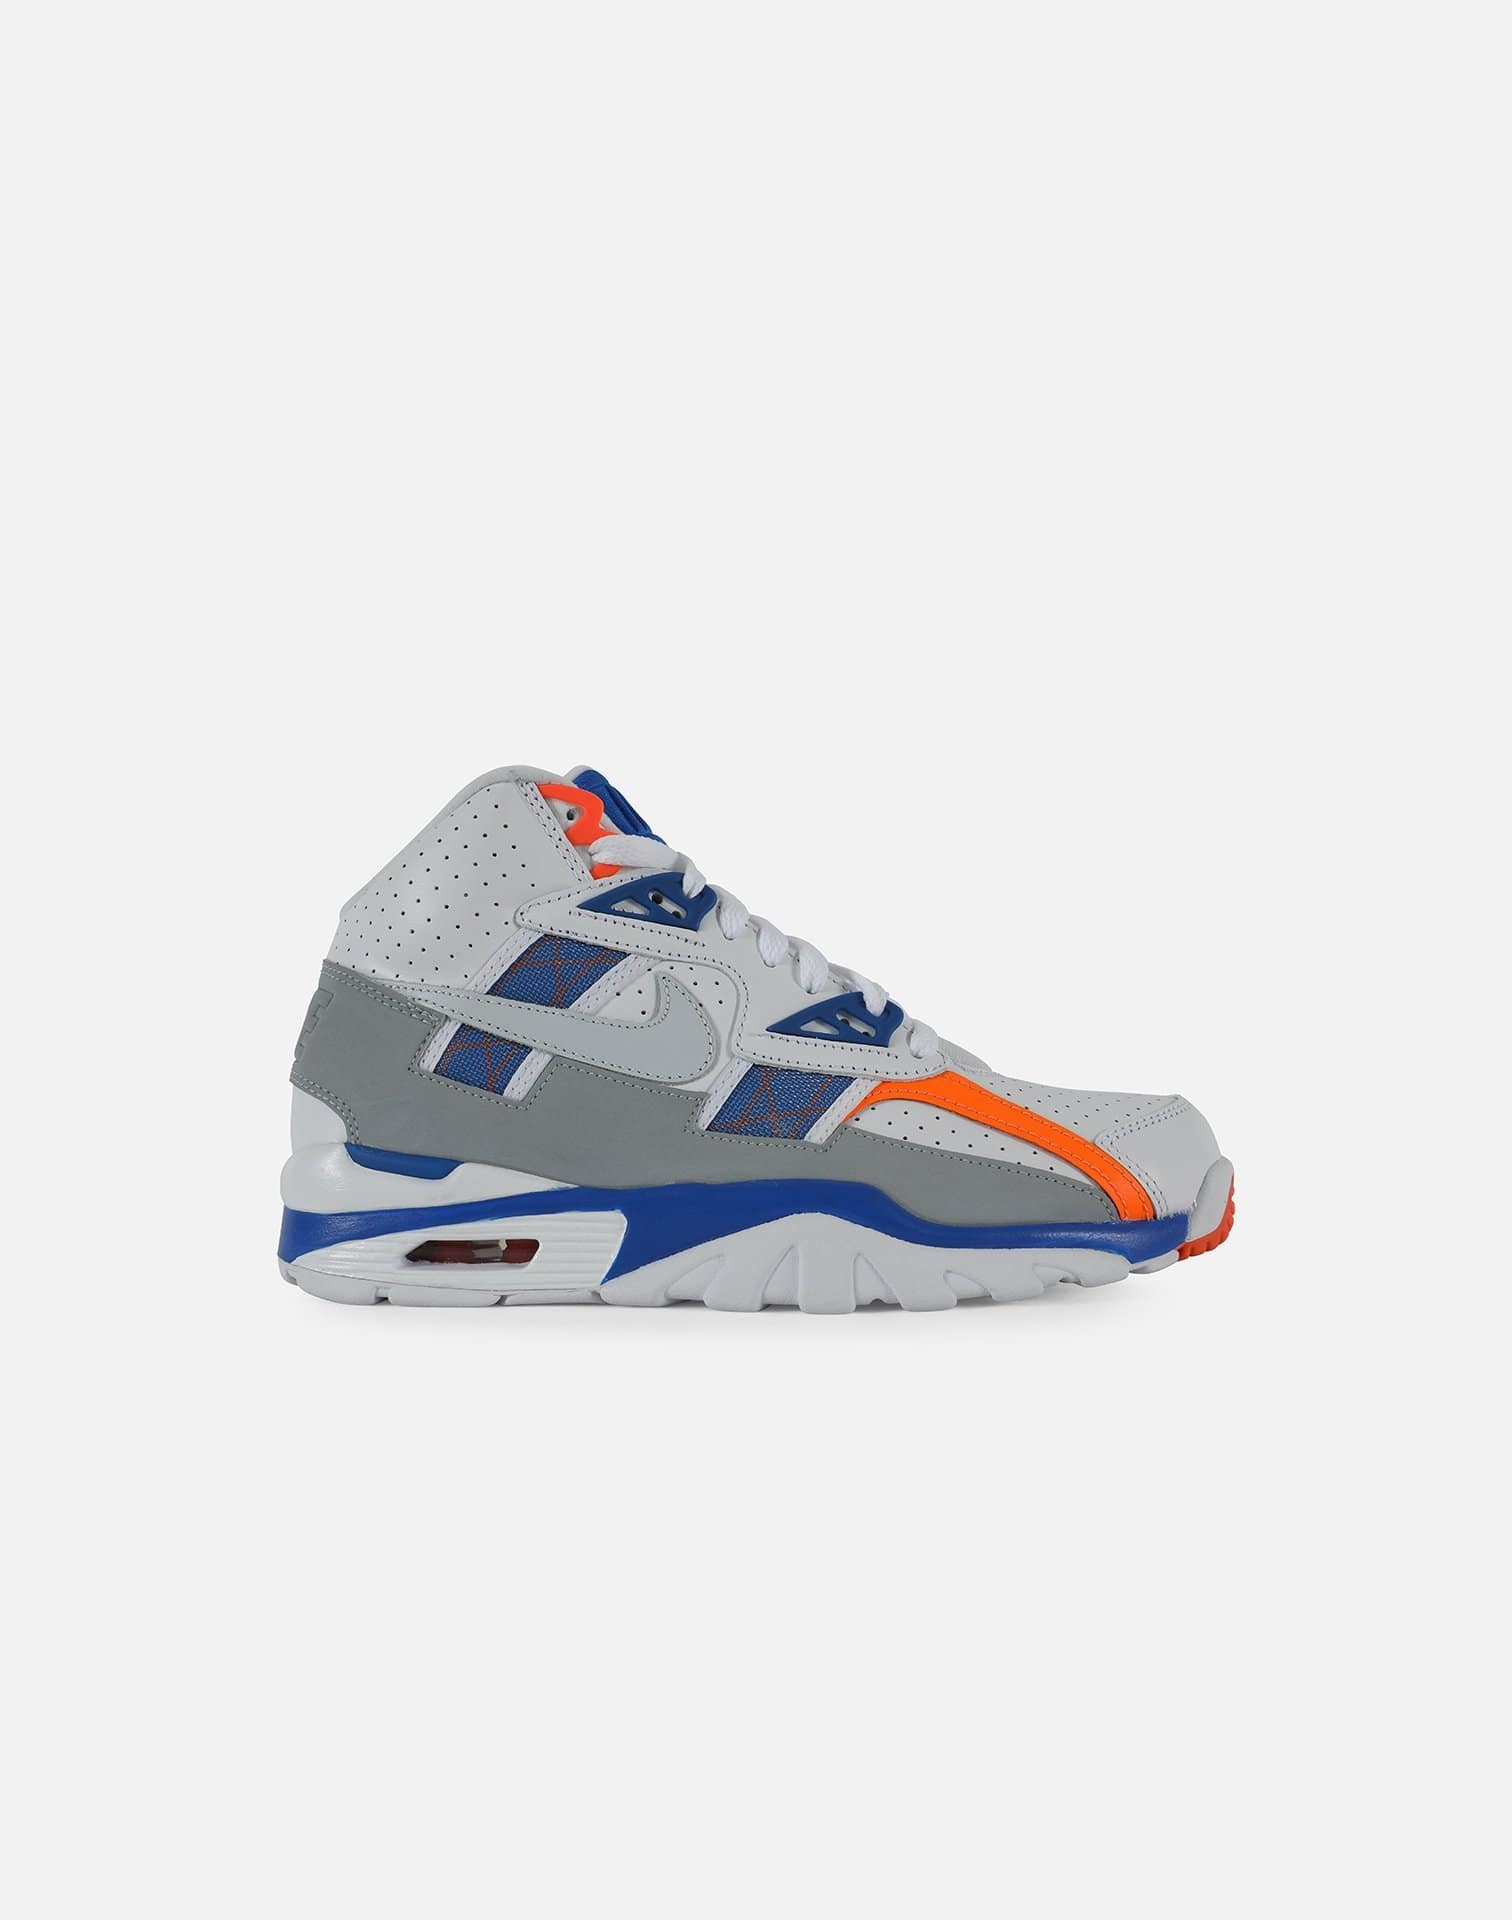 Nike Air Trainer SC High Grade-School